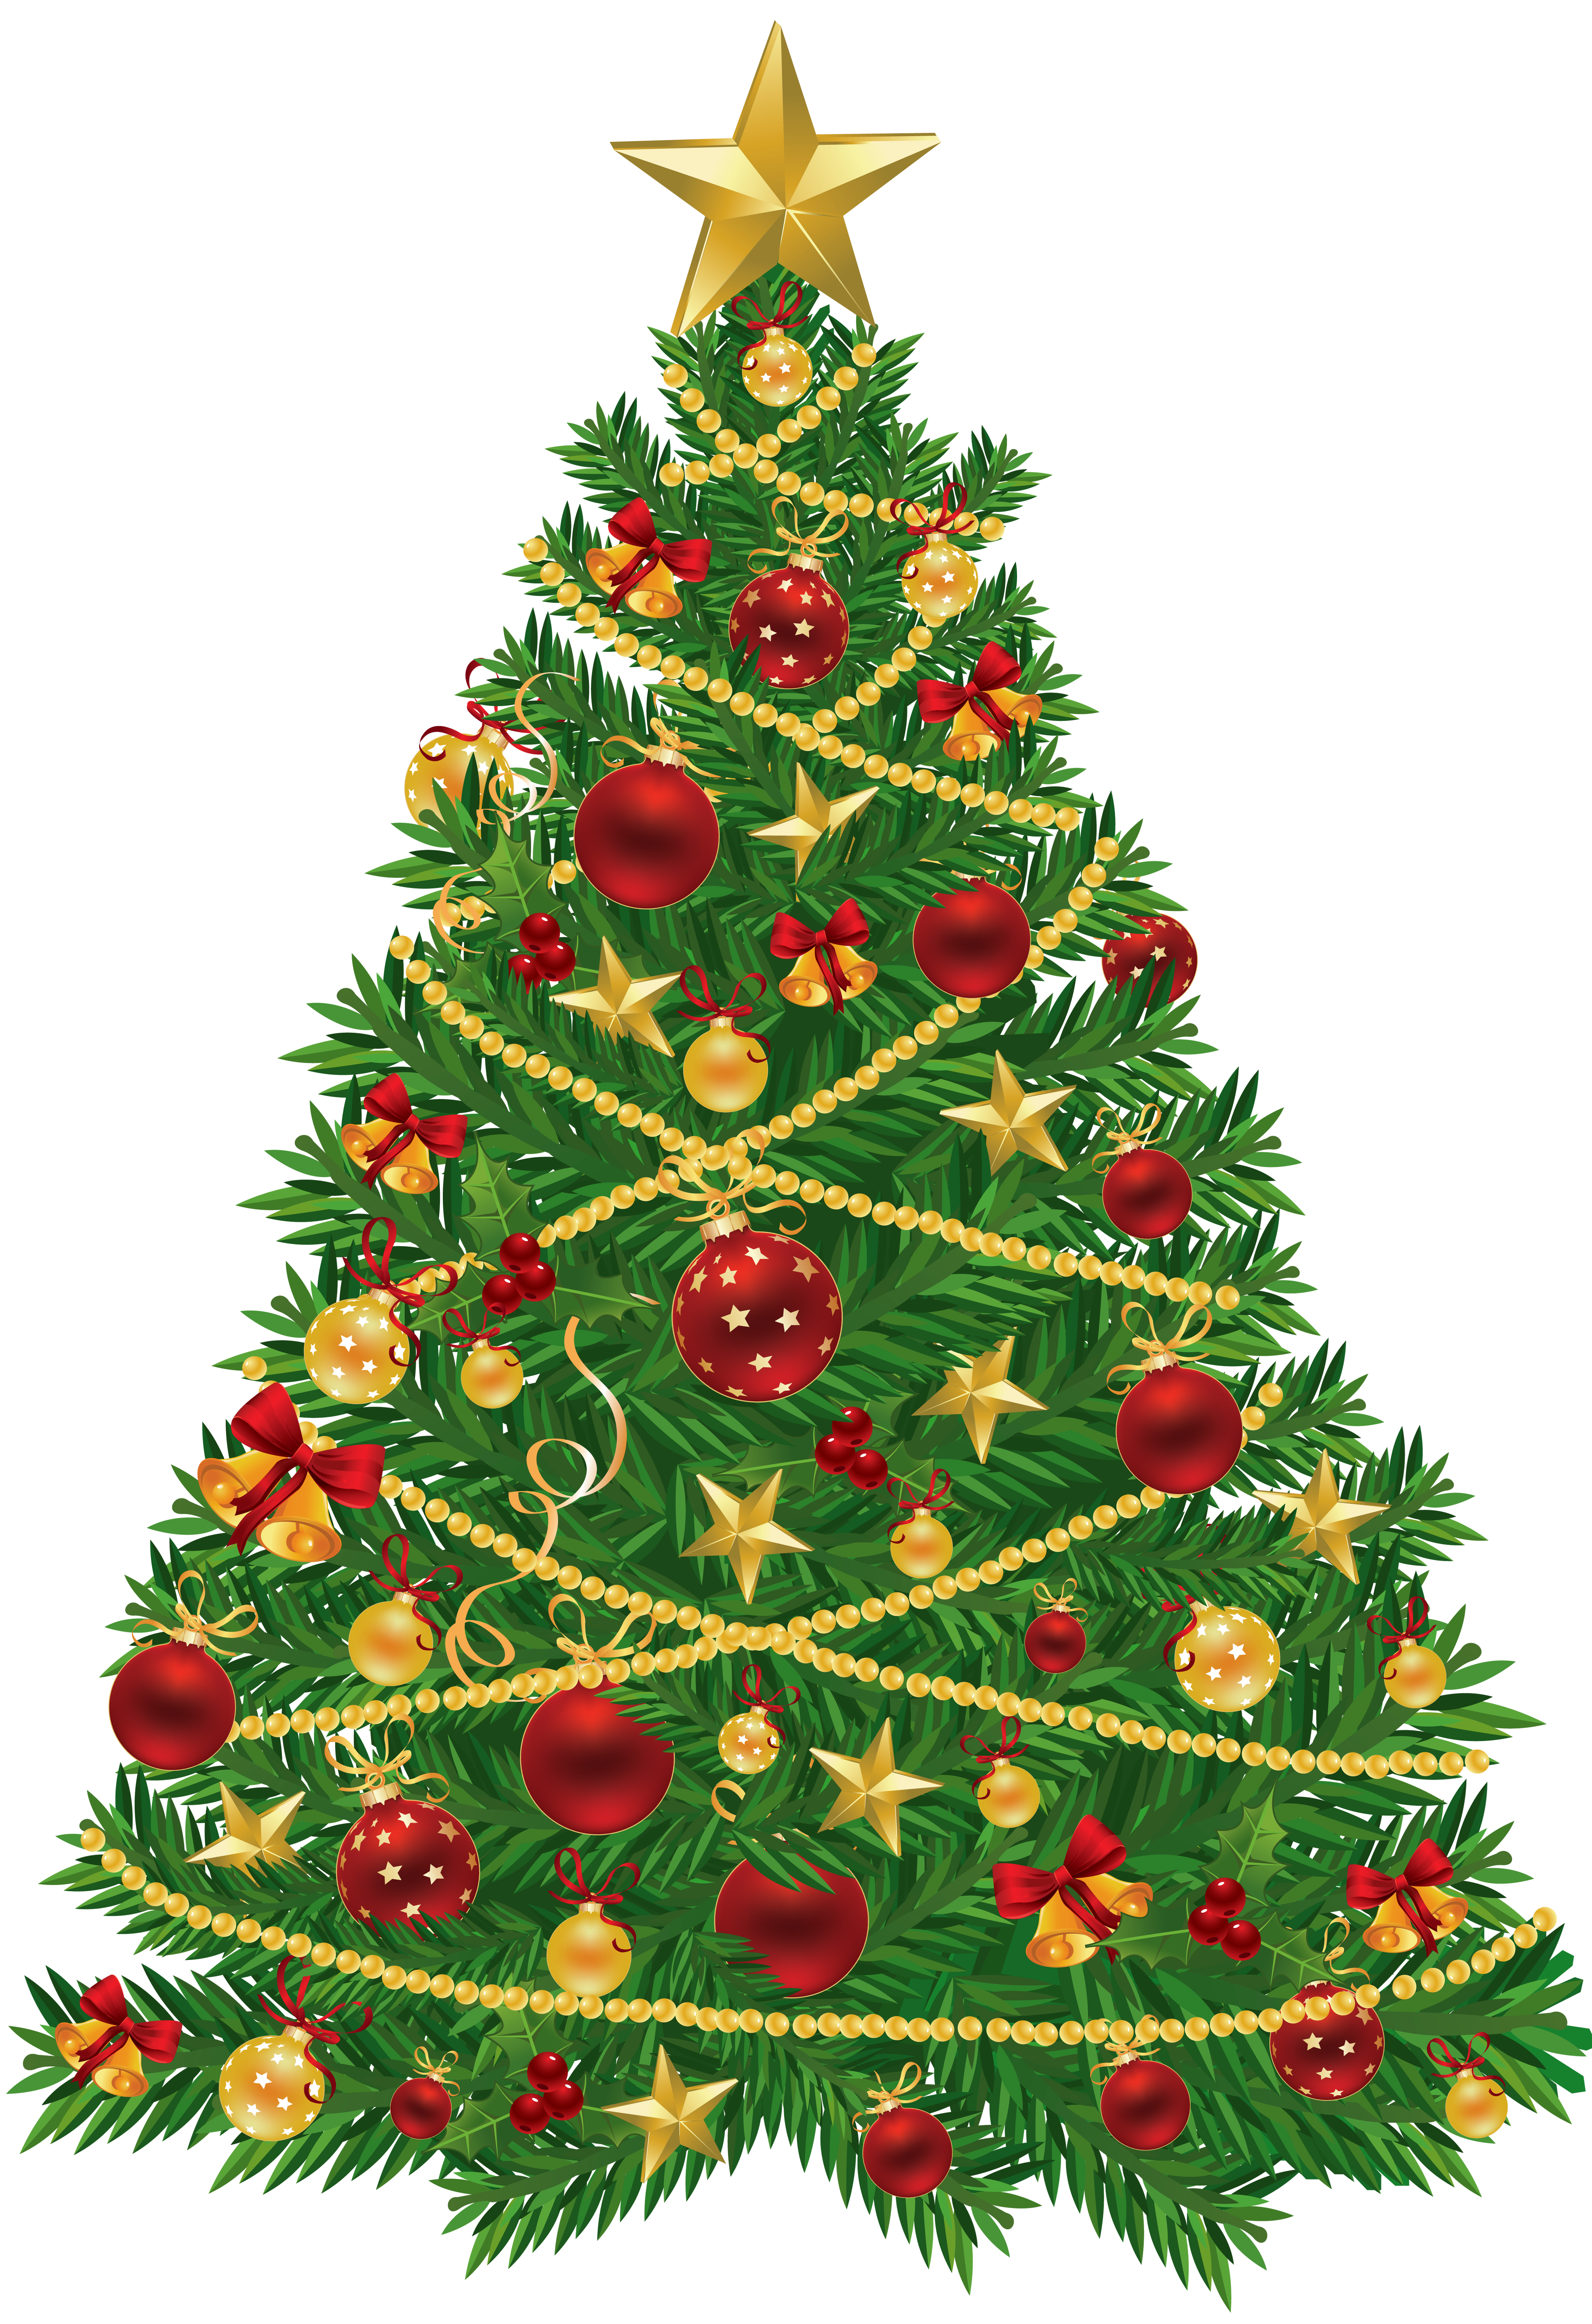 Large Transparent Christmas Tree with Red and Gold Ornaments Clipart.